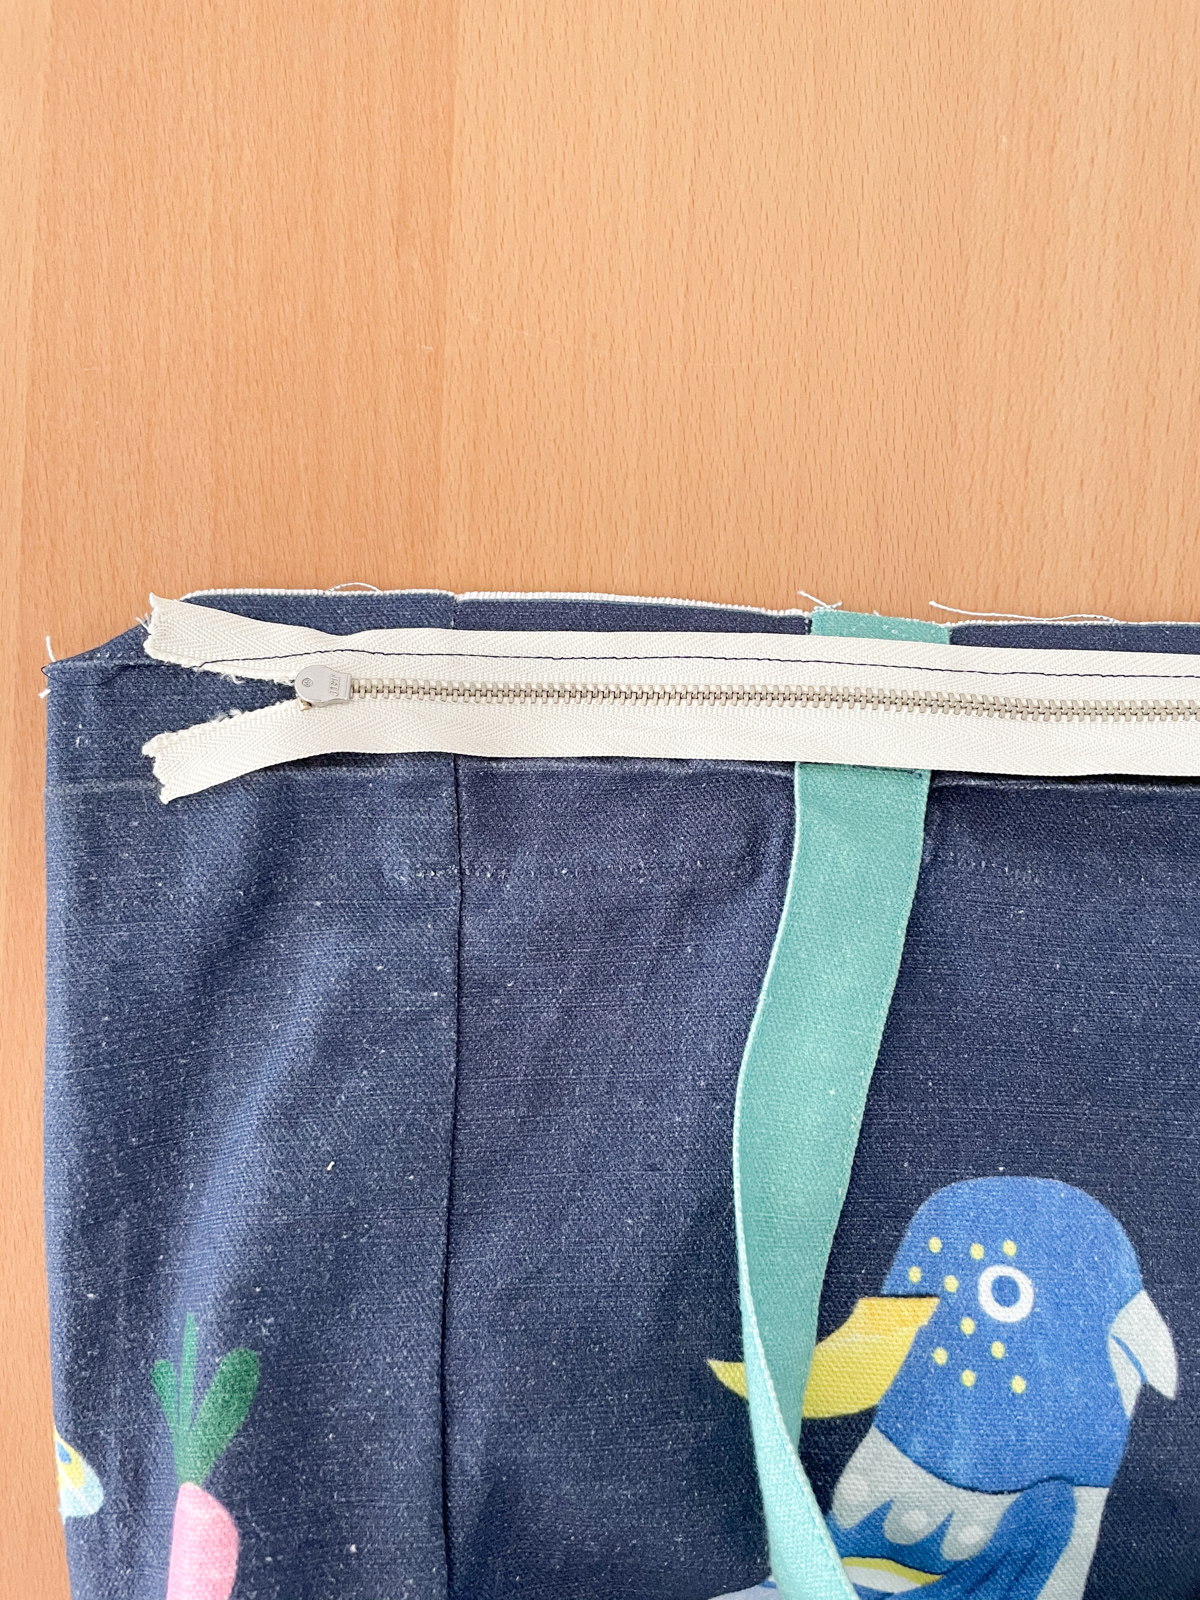 How to Add a Zip to a Tote Bag | Step 4, sew zip. Megan Nielsen Patterns Blog